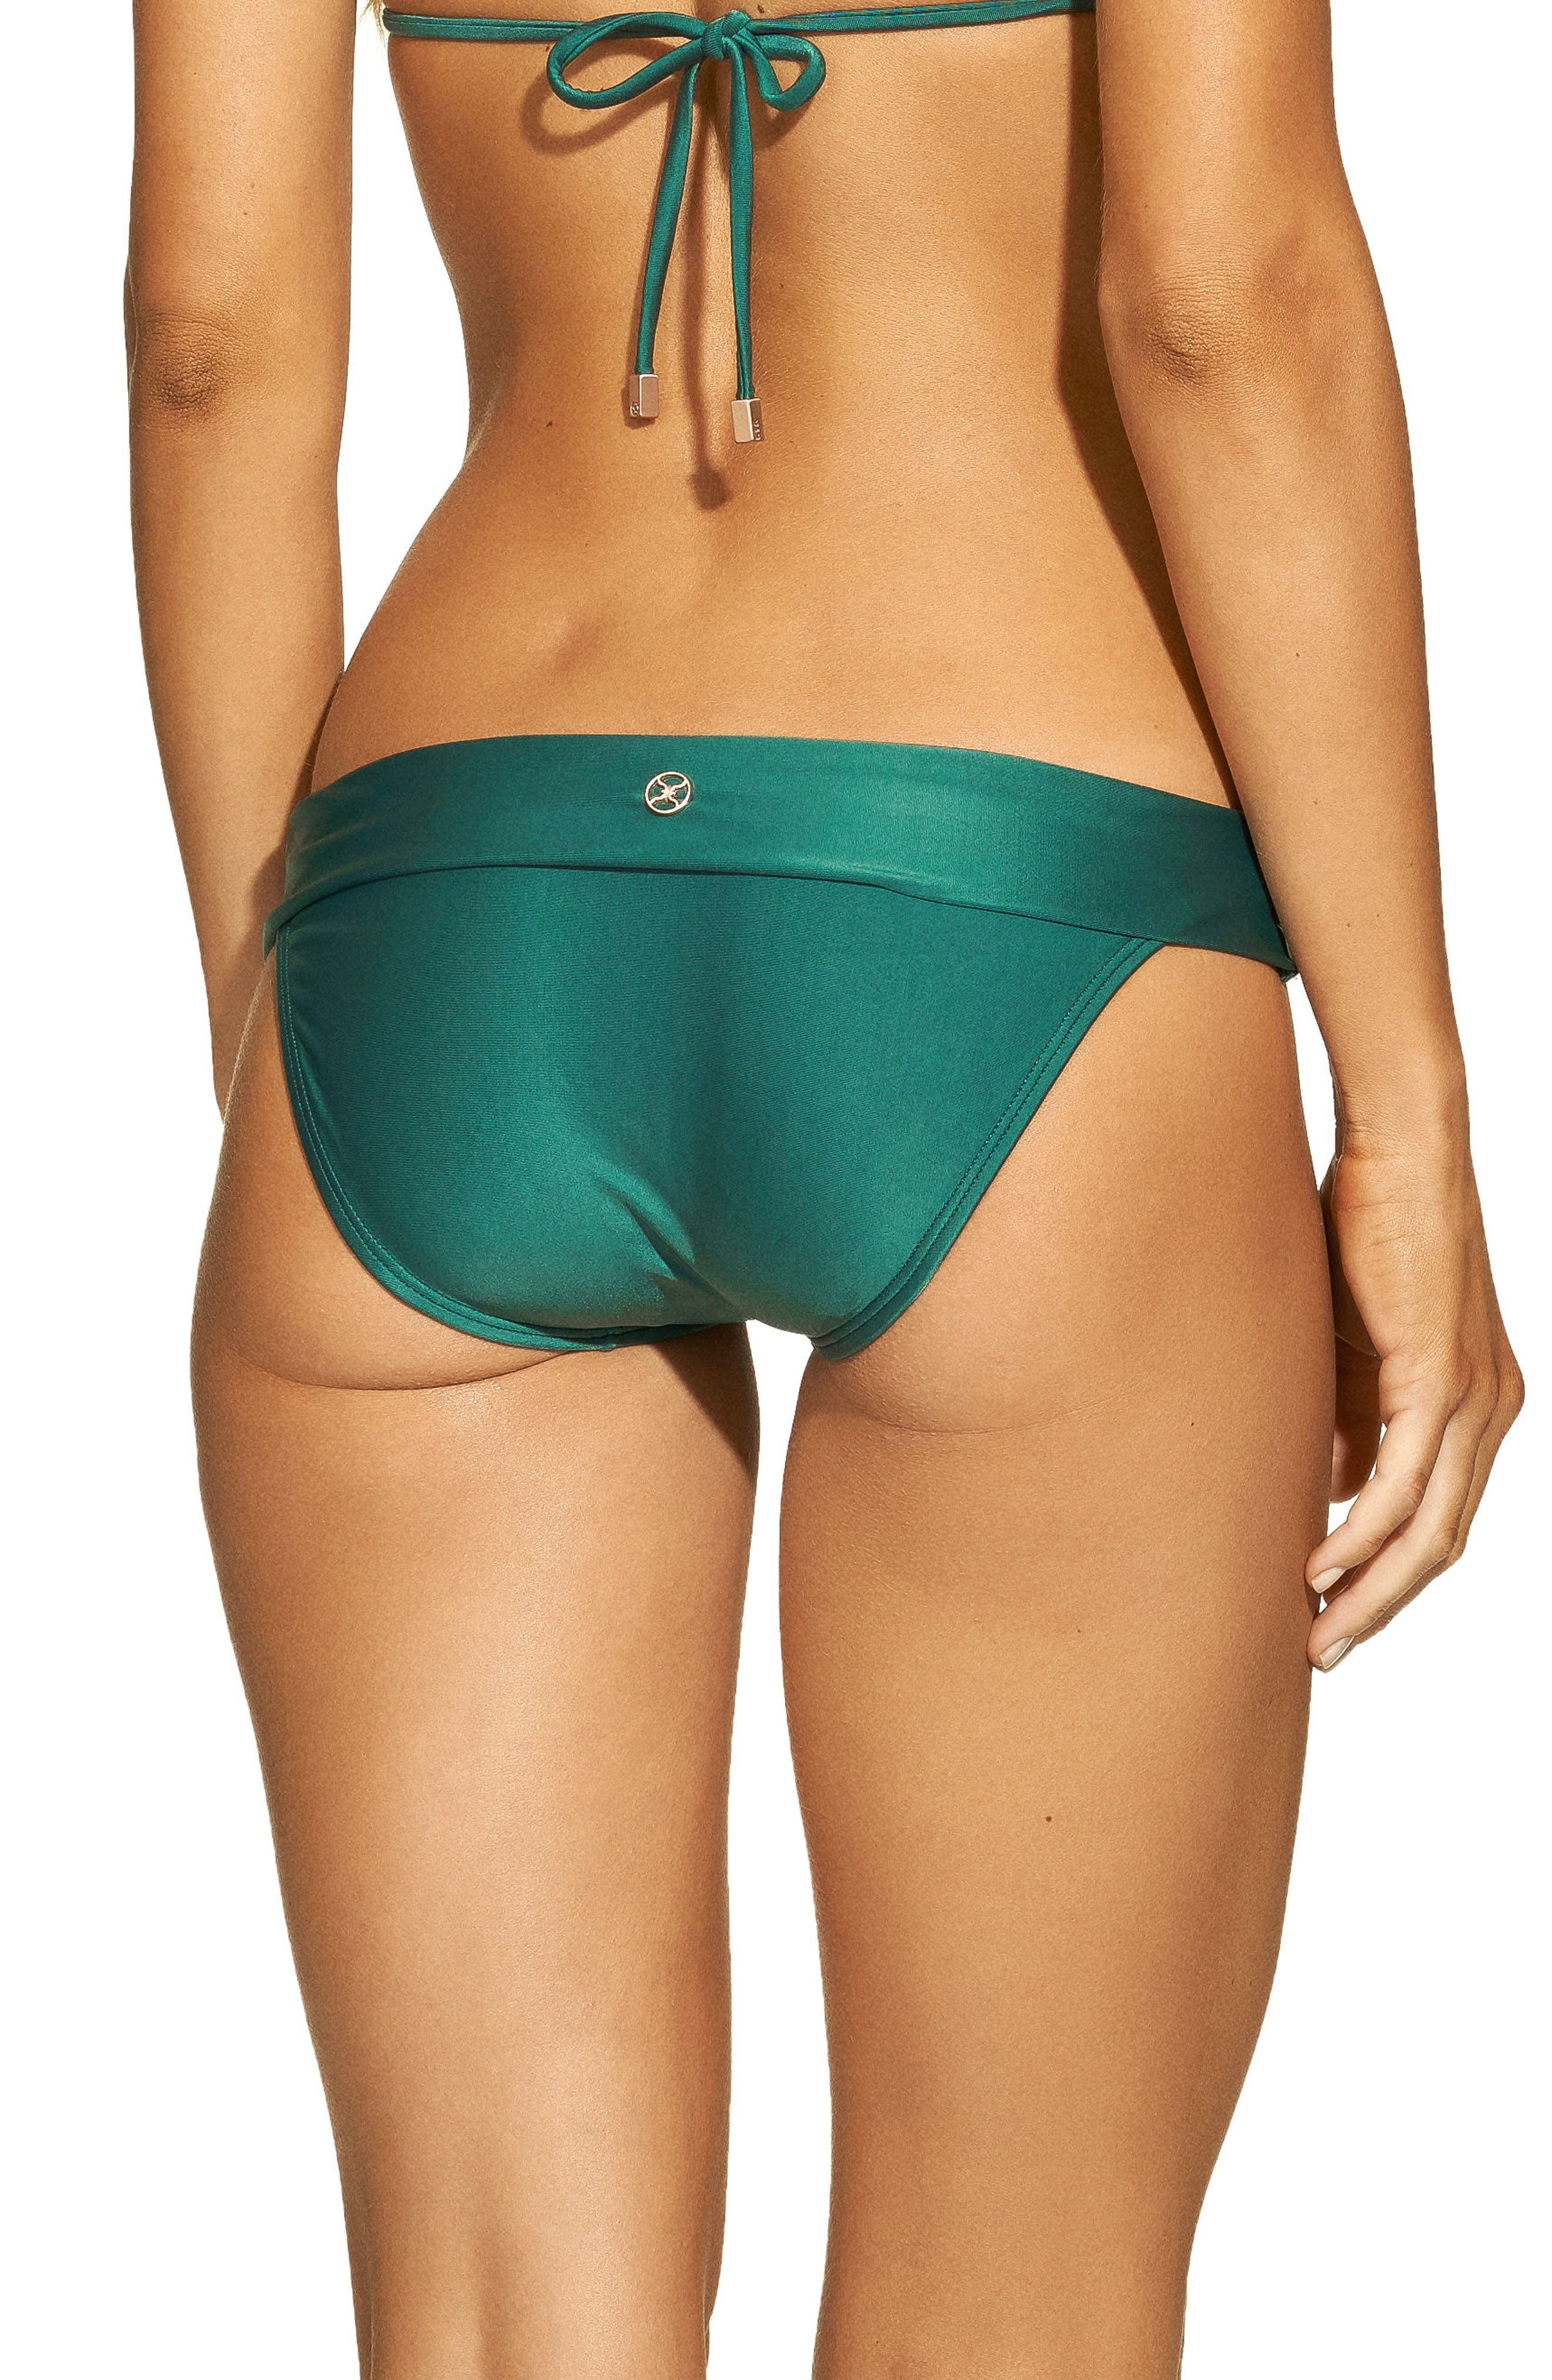 Jasper Bia Bikini Bottoms,                             Alternate thumbnail 2, color,                             315